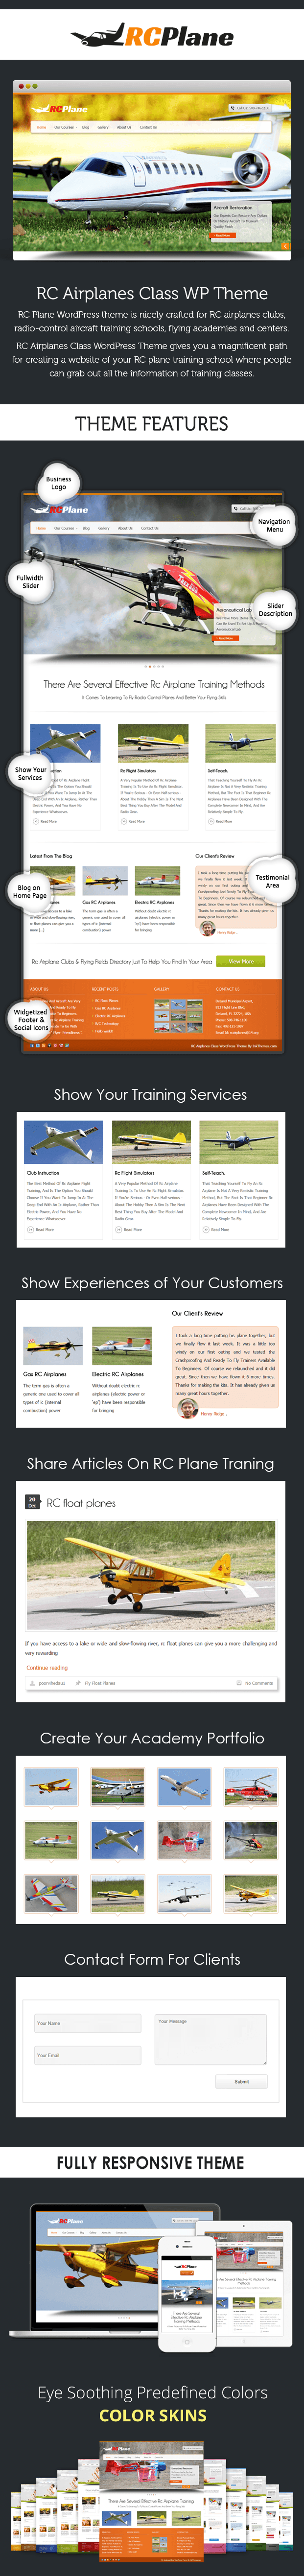 RC Airplanes Class WP Theme